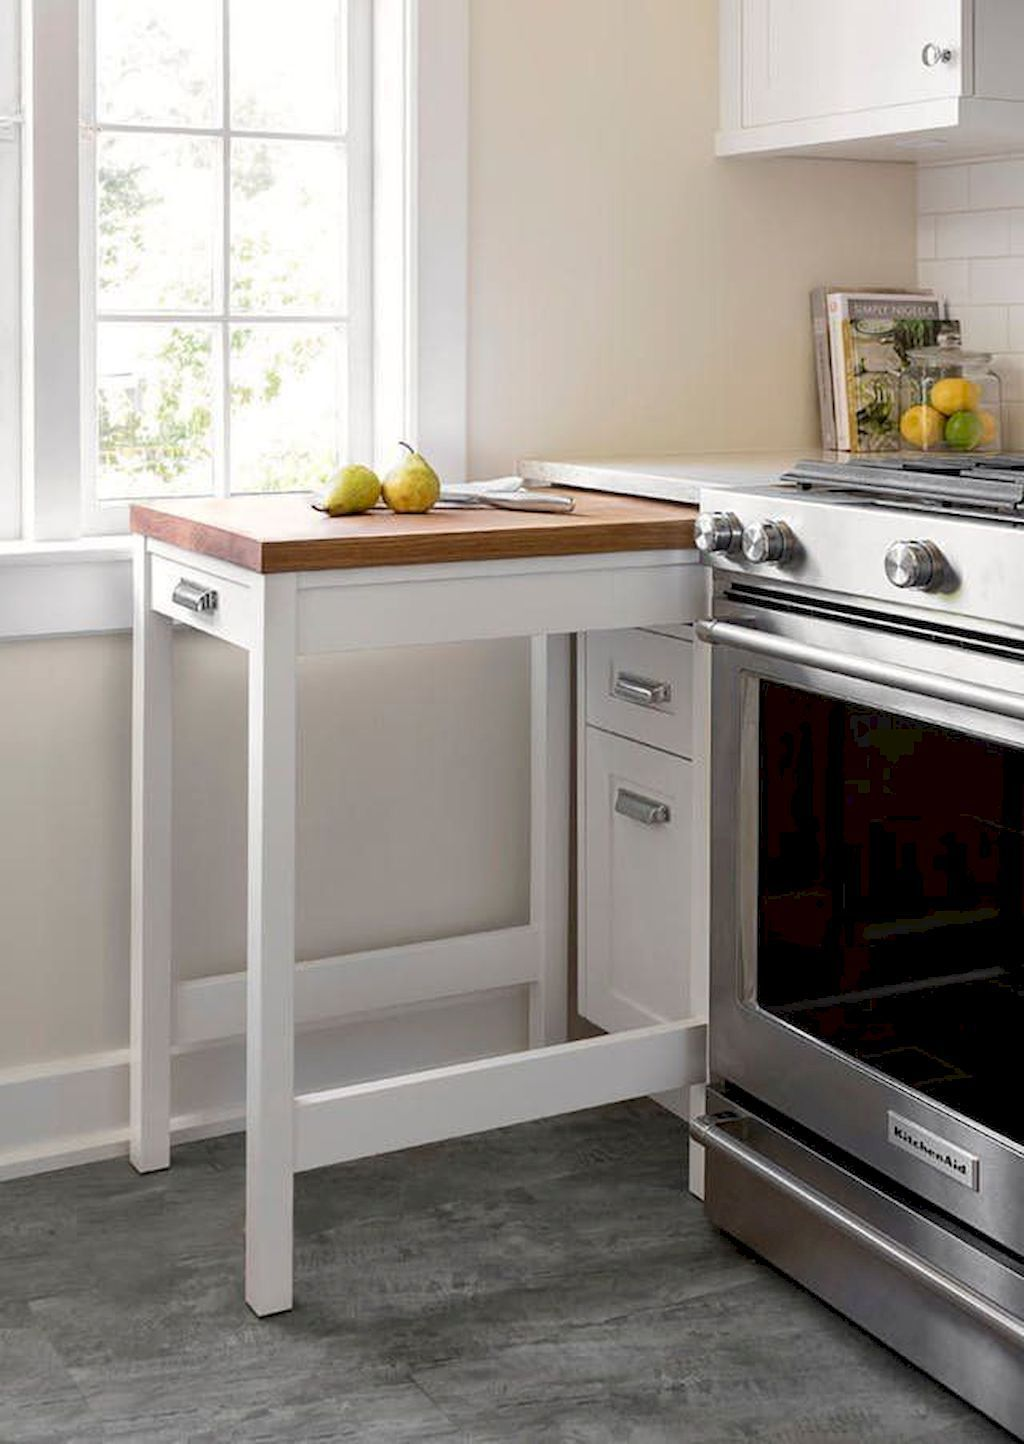 Storage Ideas for Small Kitchens That Look Compact and ...